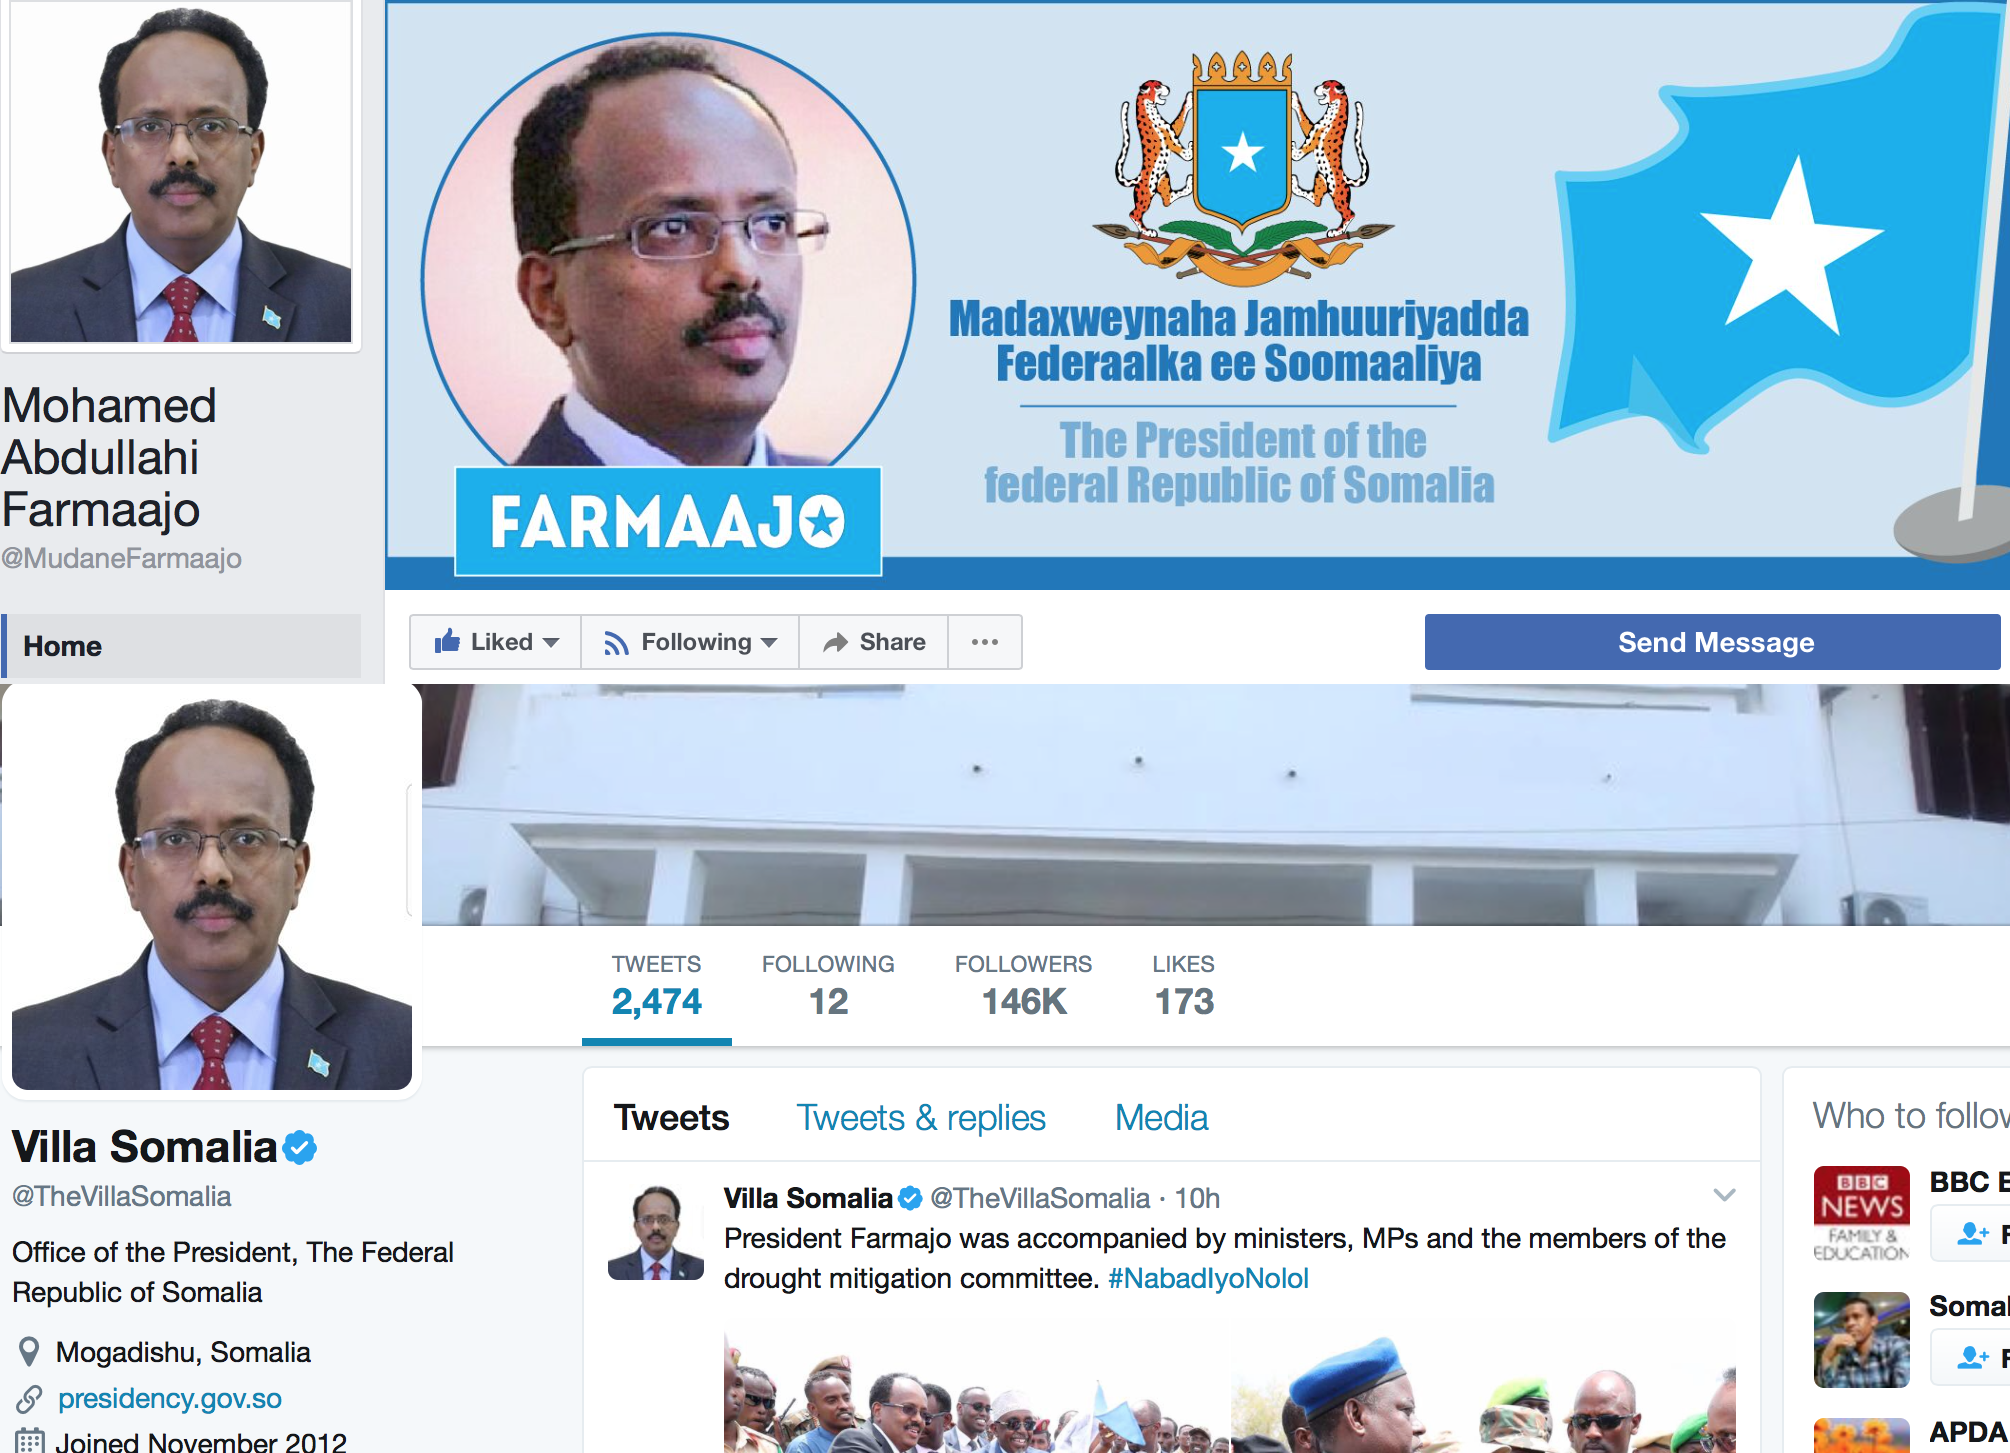 President of twitter and facebook not of Somalia.